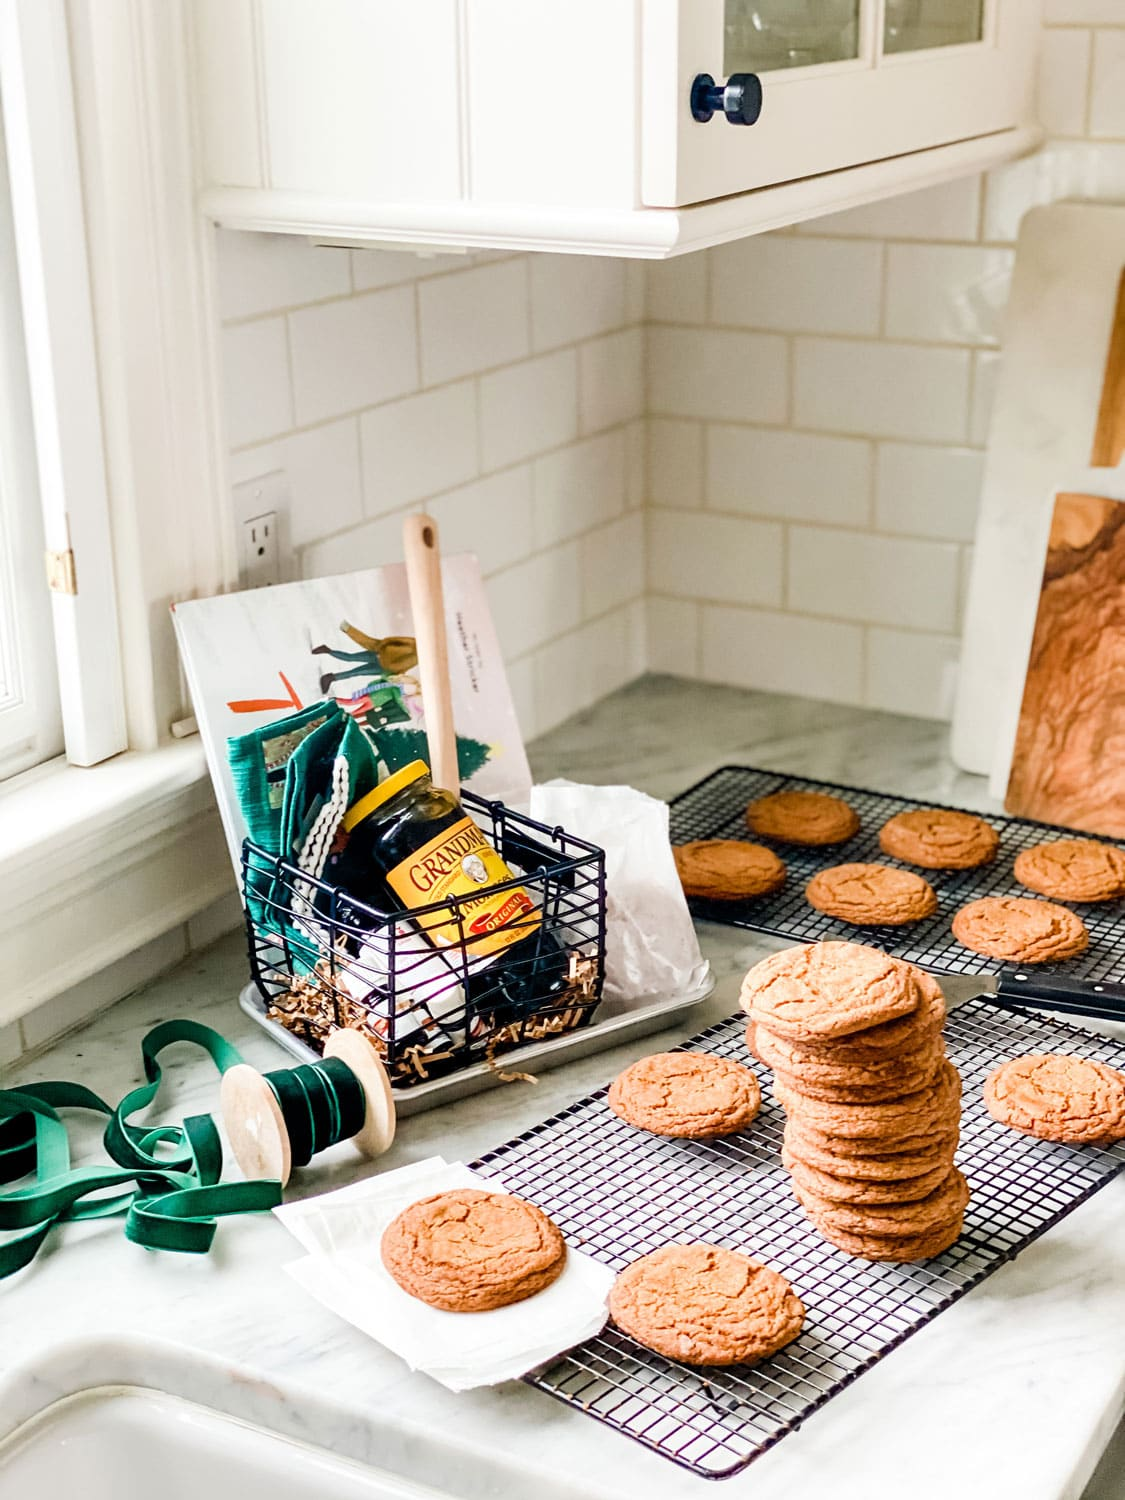 cookies on counter with basket and book